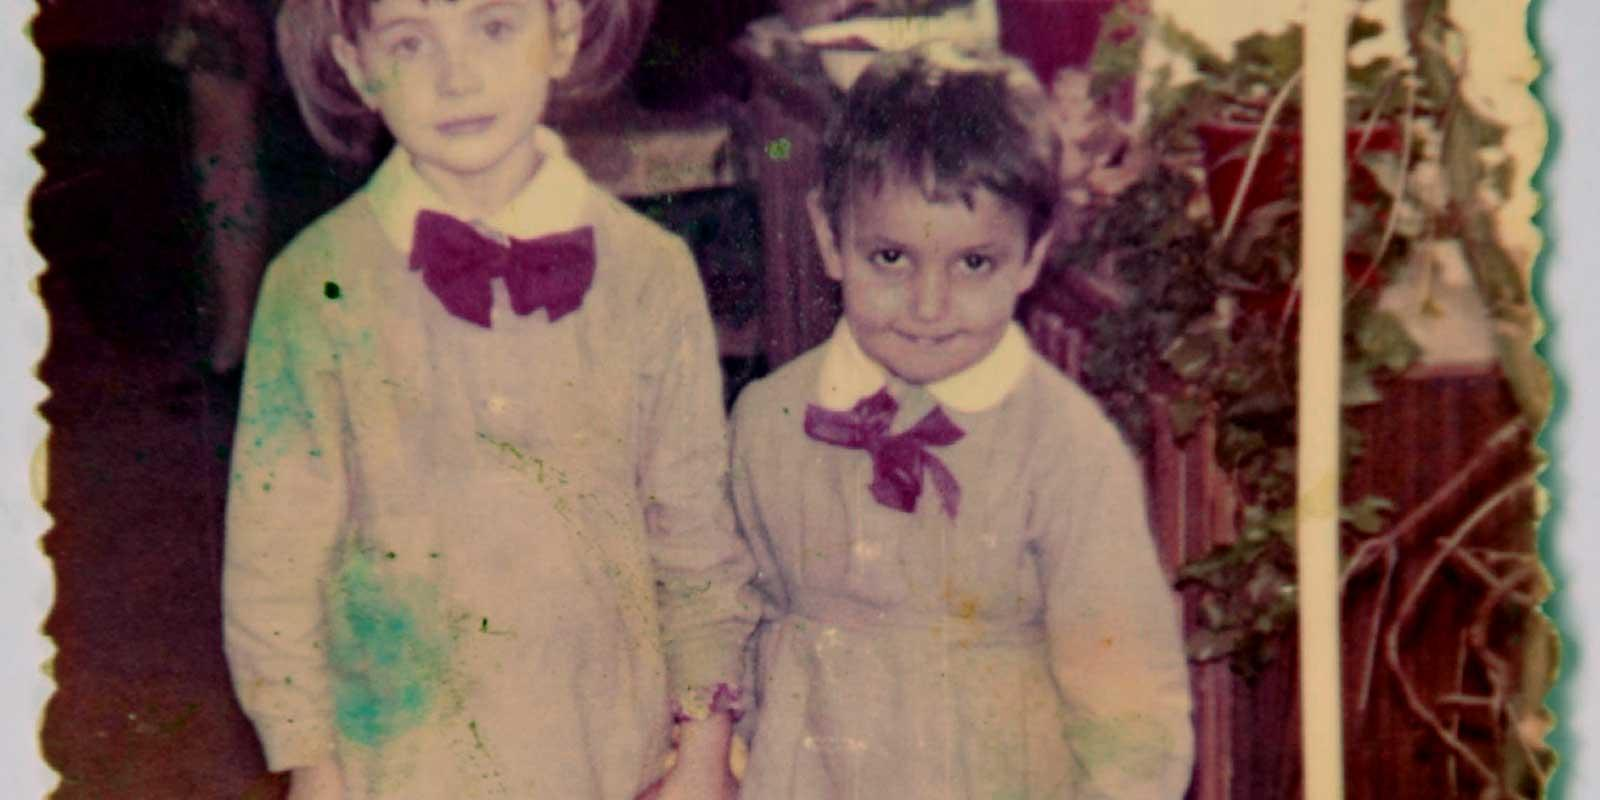 Valeriu as a boy, holding a girl's hand.